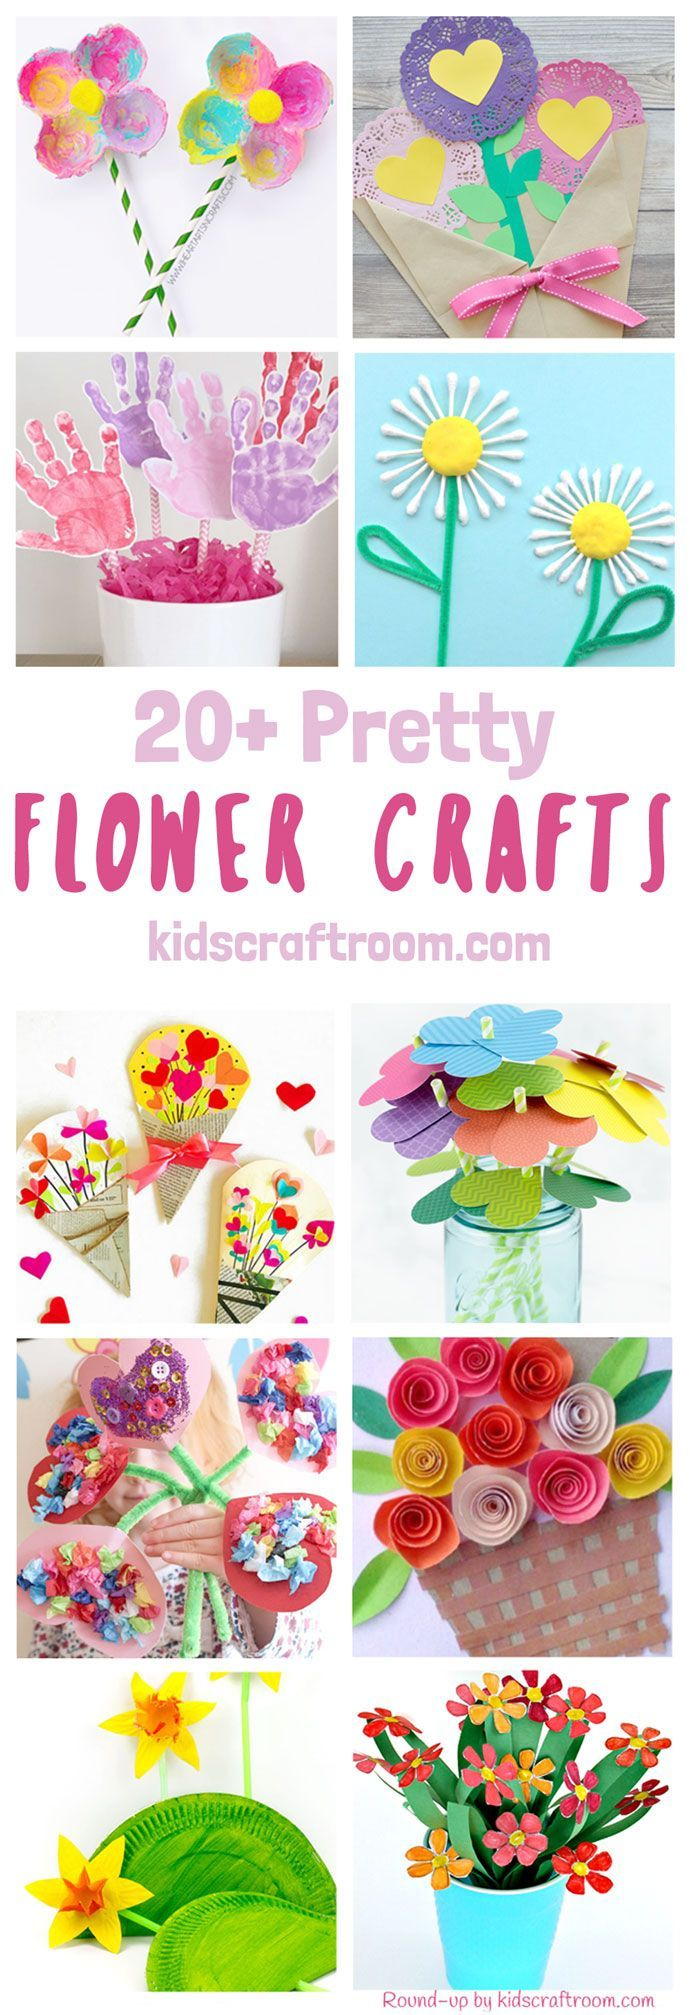 20+ PRETTY FLOWER CRAFTS FOR KIDS - all of them are truly gorgeous!  Flower crafts are a fabulously fun way to get creative with the kids in Spring and Summer and they make gorgeous gifts and greeting cards for special occasions too like Mother's Day, Valentine's Day and birthdays. #kidscraftroom #flowers #flowercrafts #diyflowers #homemadeflowers #kidscrafts #craftsforkids #mothersday #mothersdaycrafts #mothersdaygifts #valentinecrafts #summercrafts #springcrafts